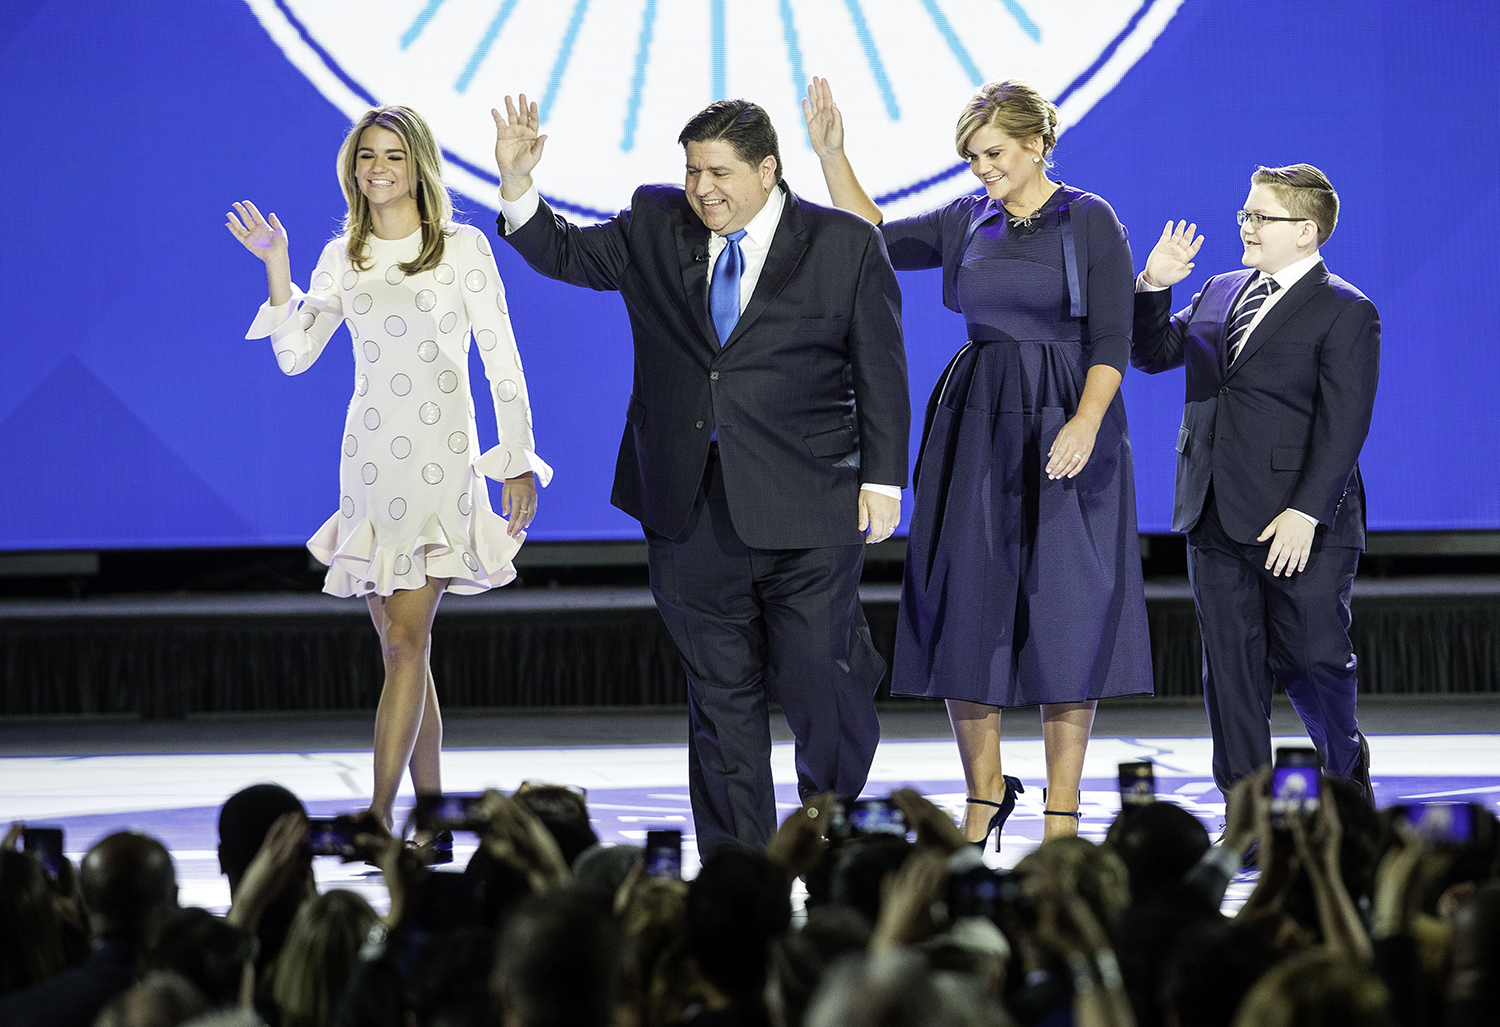 Governor-elect J.B. Pritzker and his family, daughter Teddi, wife M.K. and son Donny, take the stage during the Illinois Inaugural Ceremony at the Bank of Springfield Center Monday, Jan. 14, 2019. [Ted Schurter/The State Journal-Register]